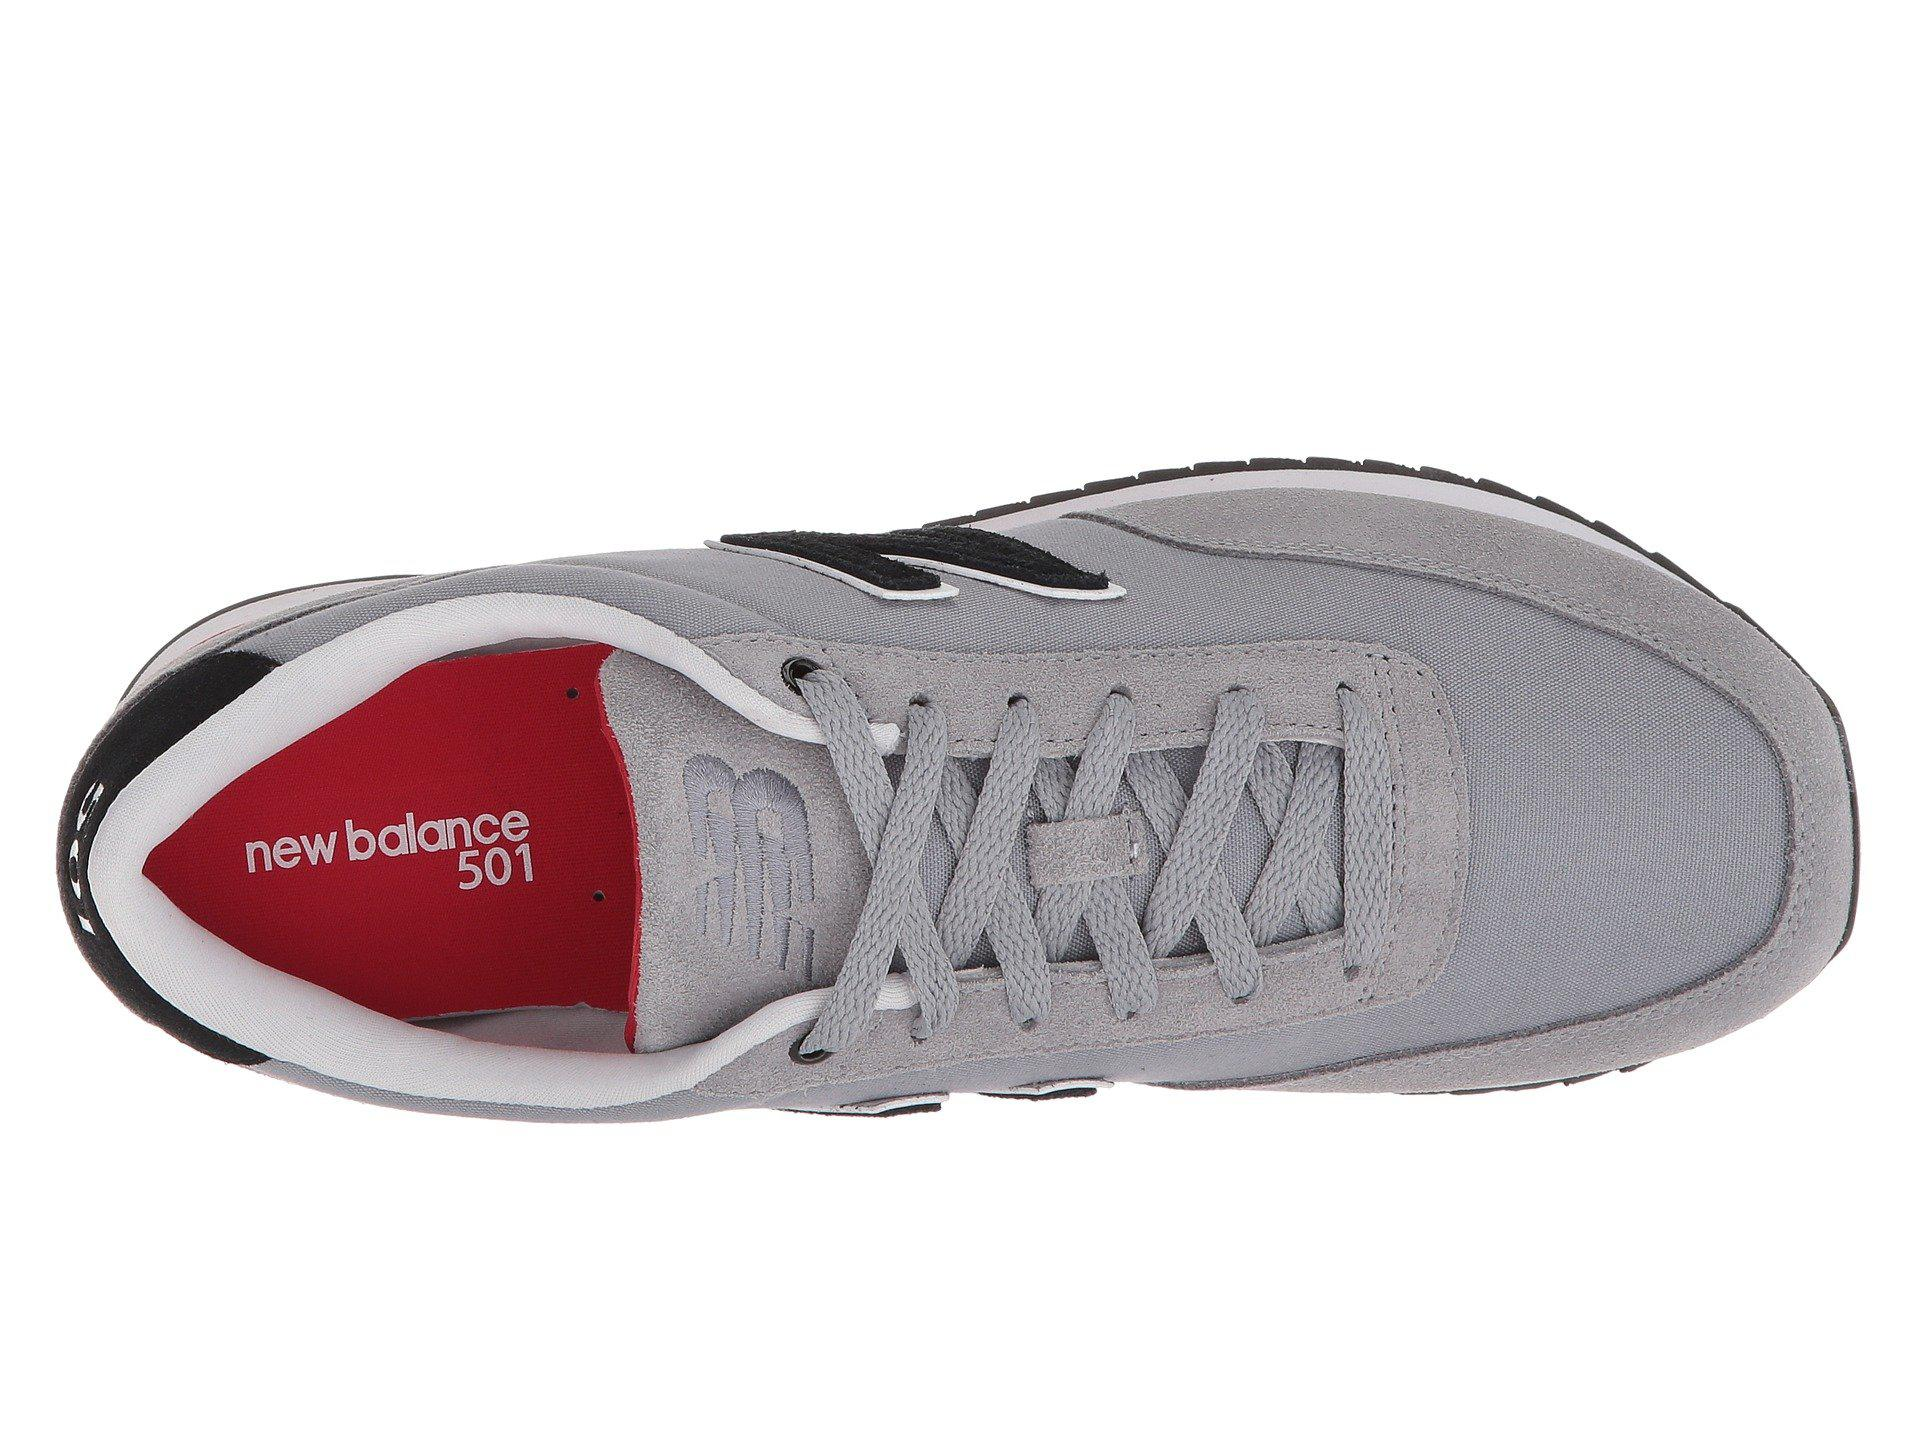 Lyst Mz501 New Balance Mz501 Lyst in Gray for Men Save 14.492753623188406% cca393